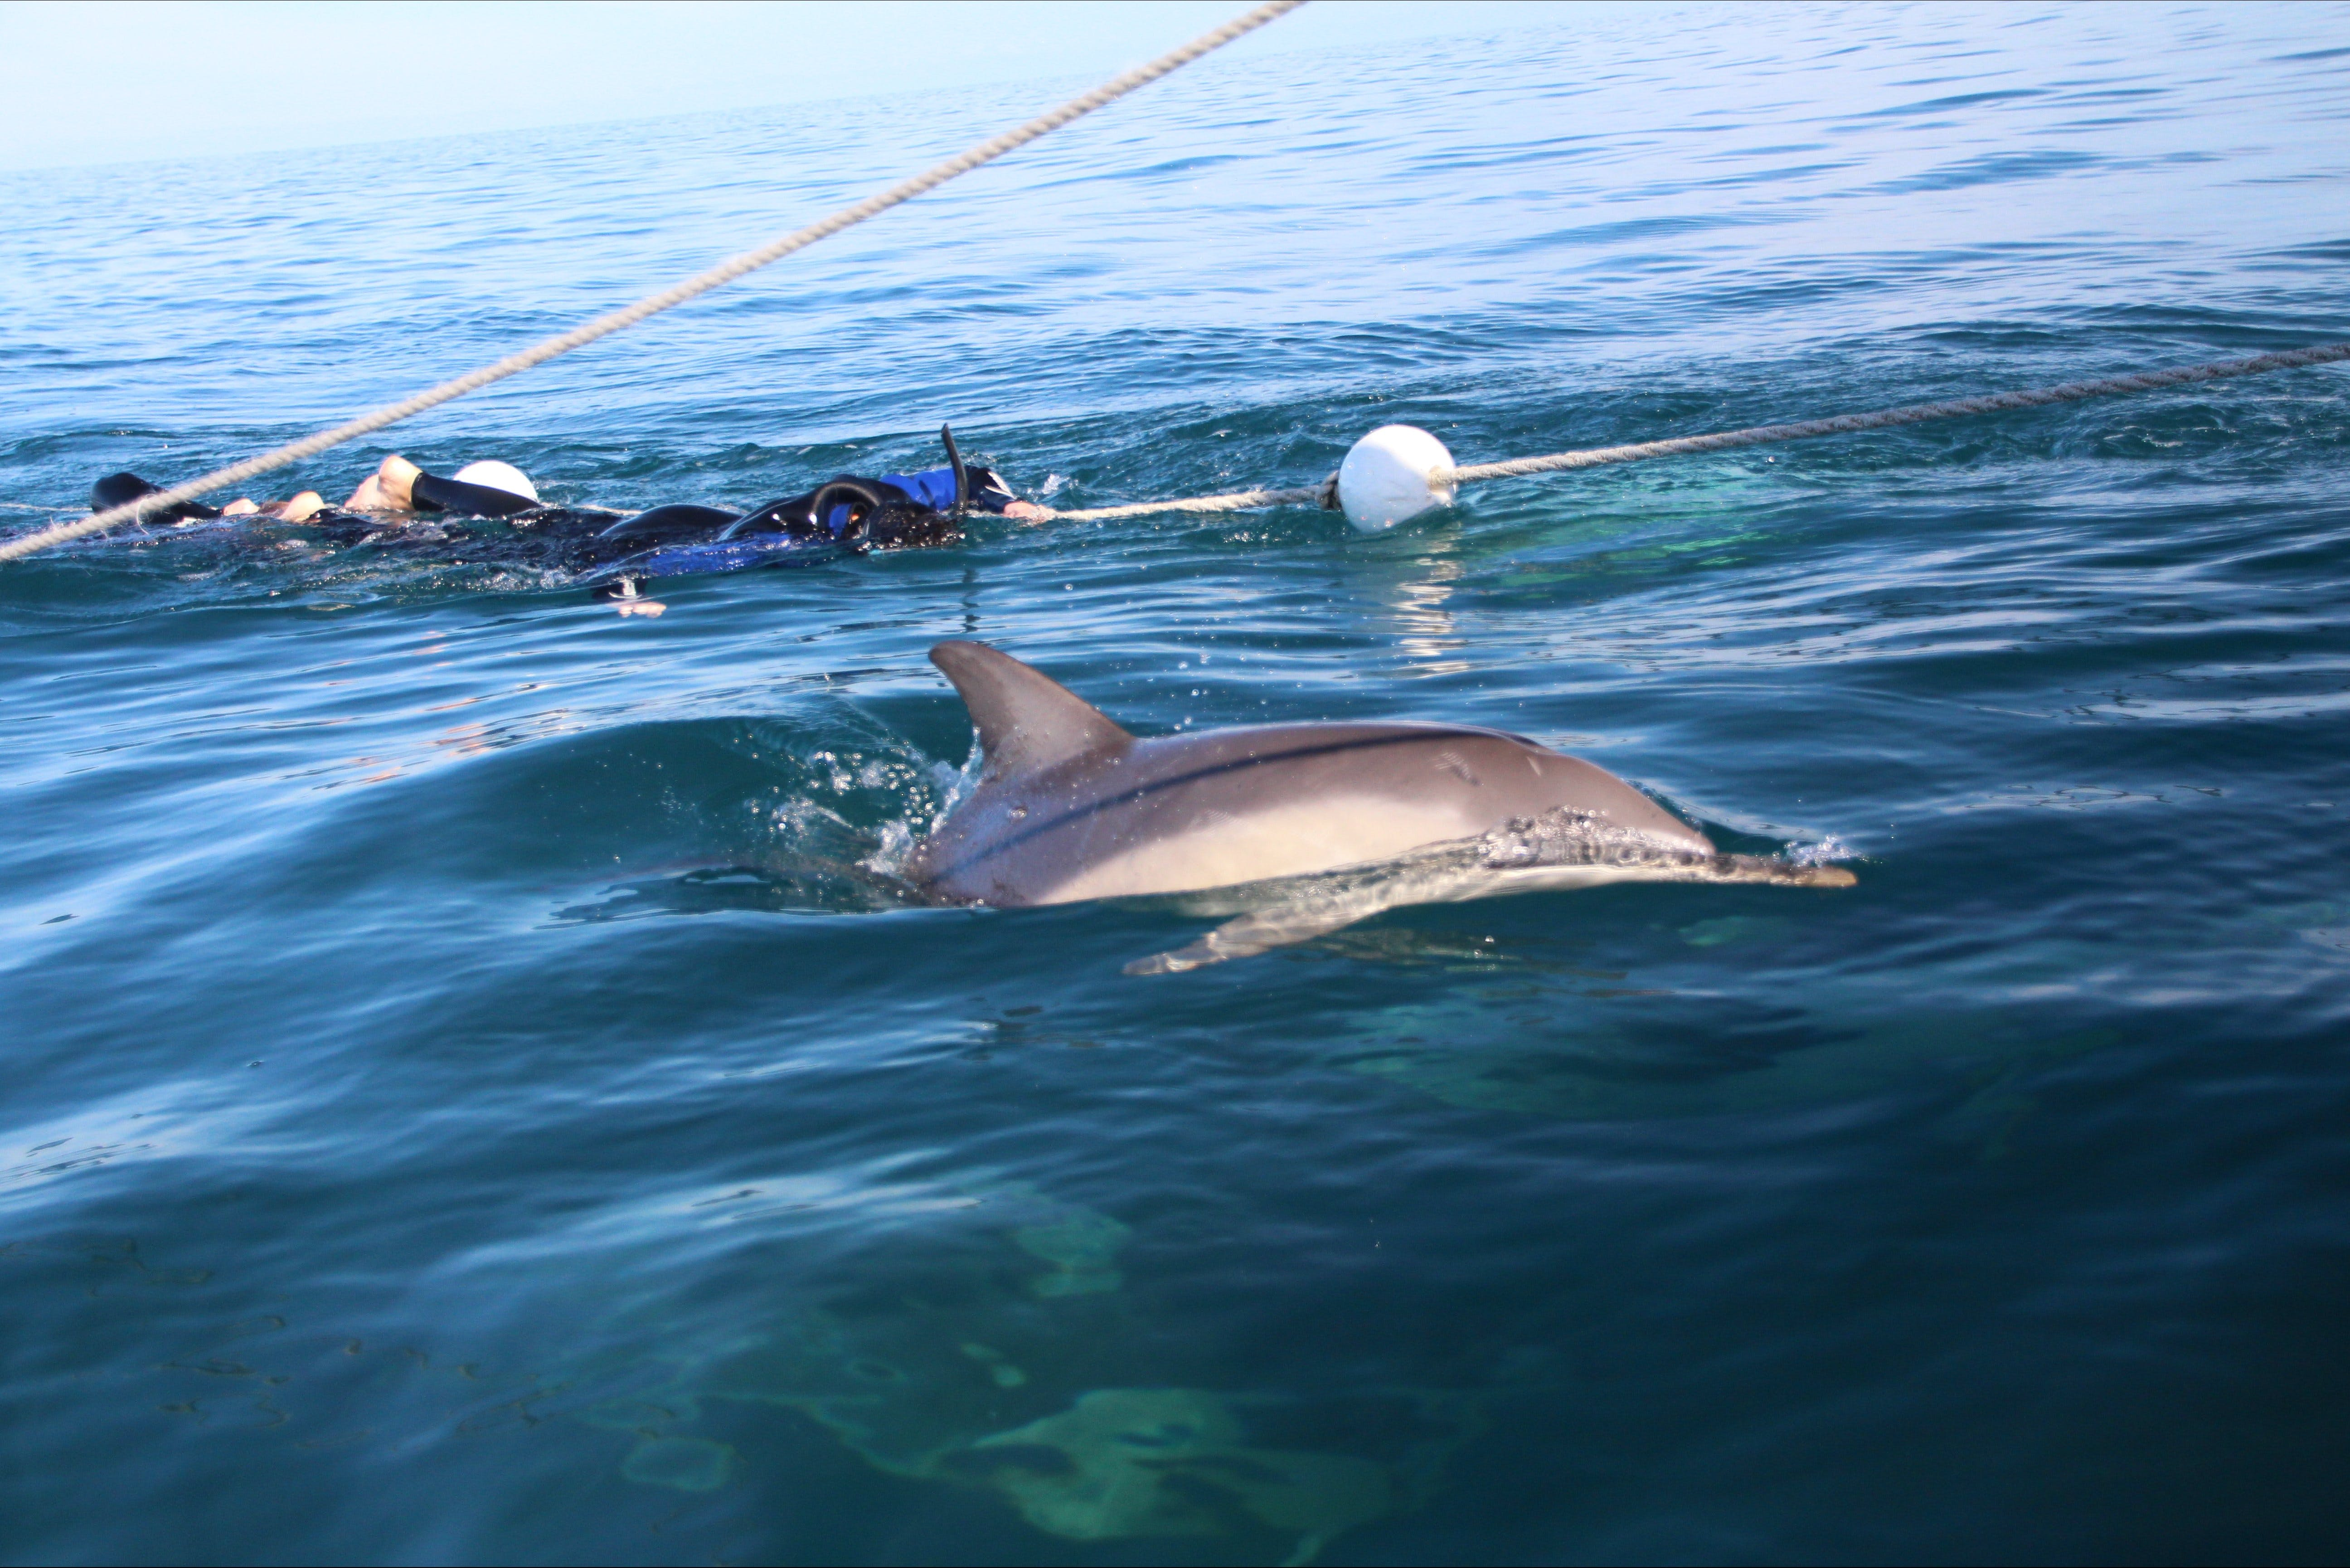 Swimming with wild dolphins off Glenelg SA